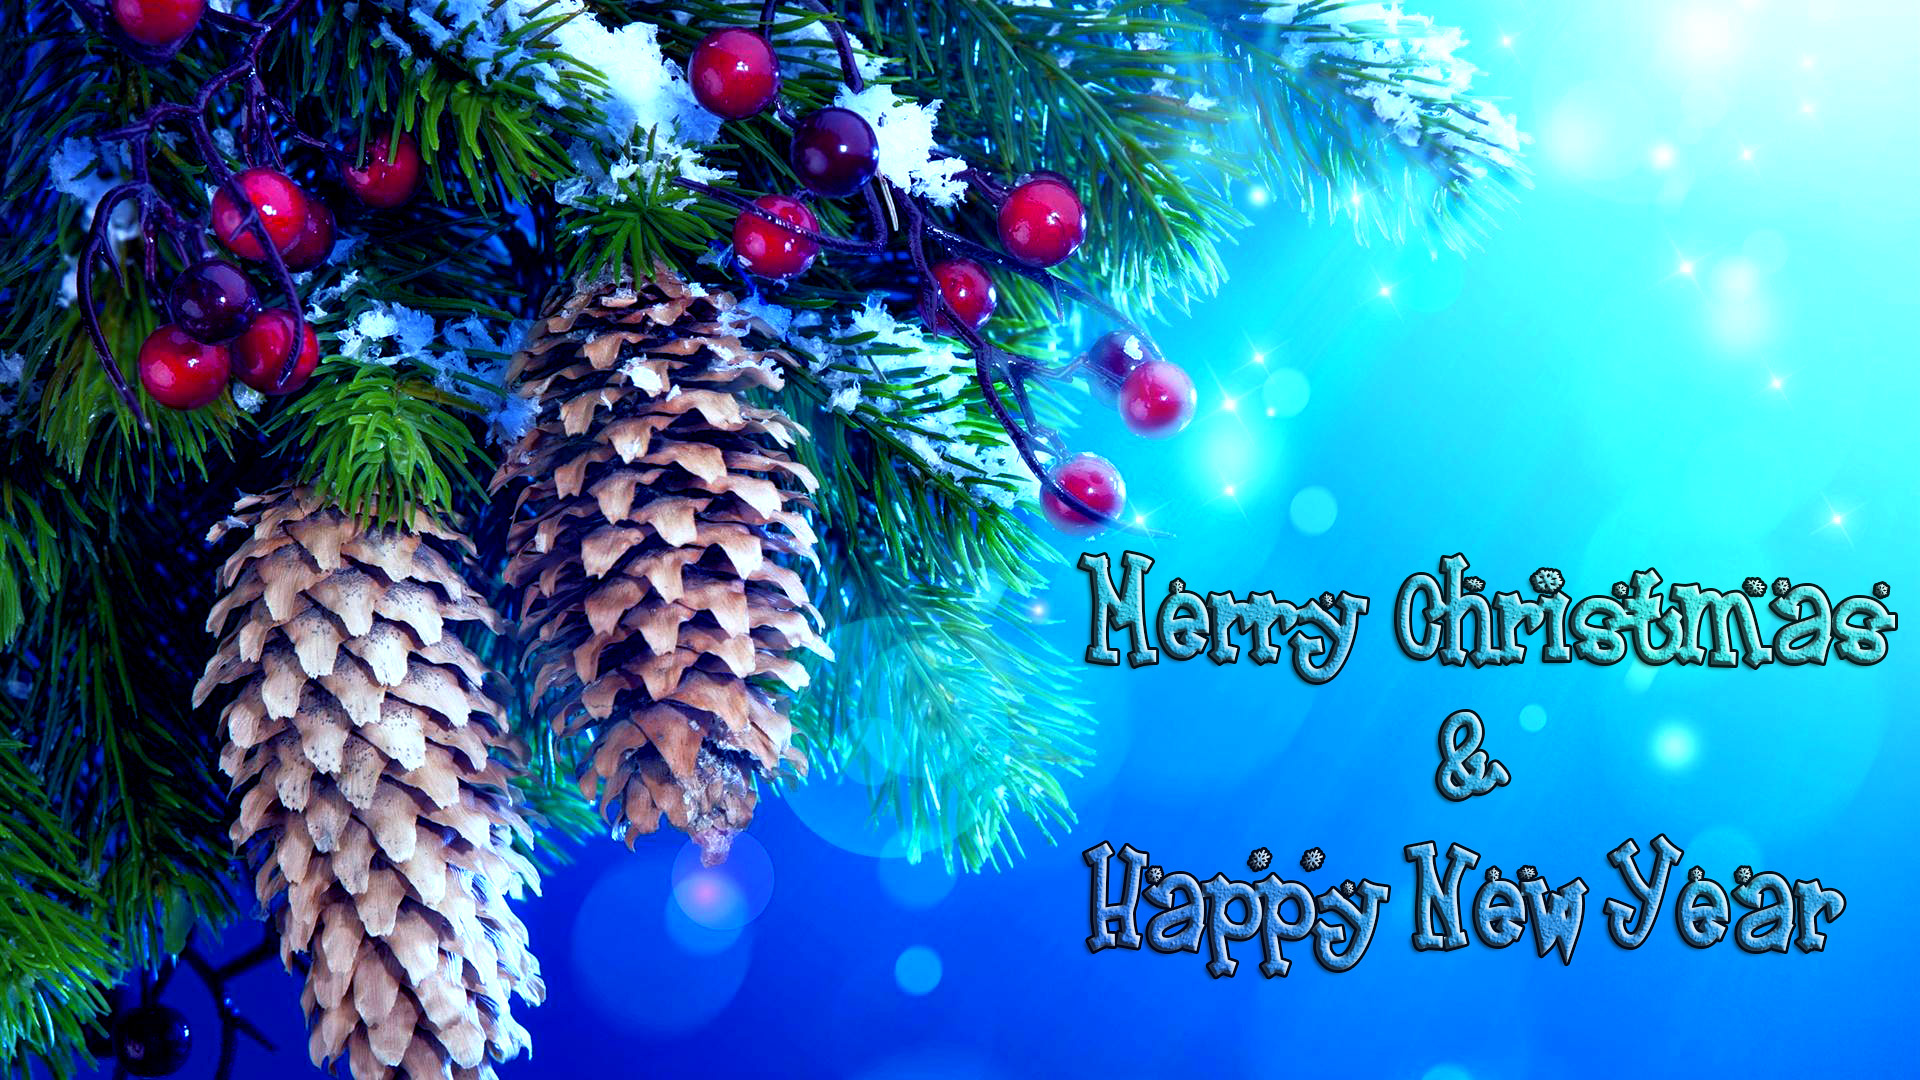 Christmas and New year 2017 images